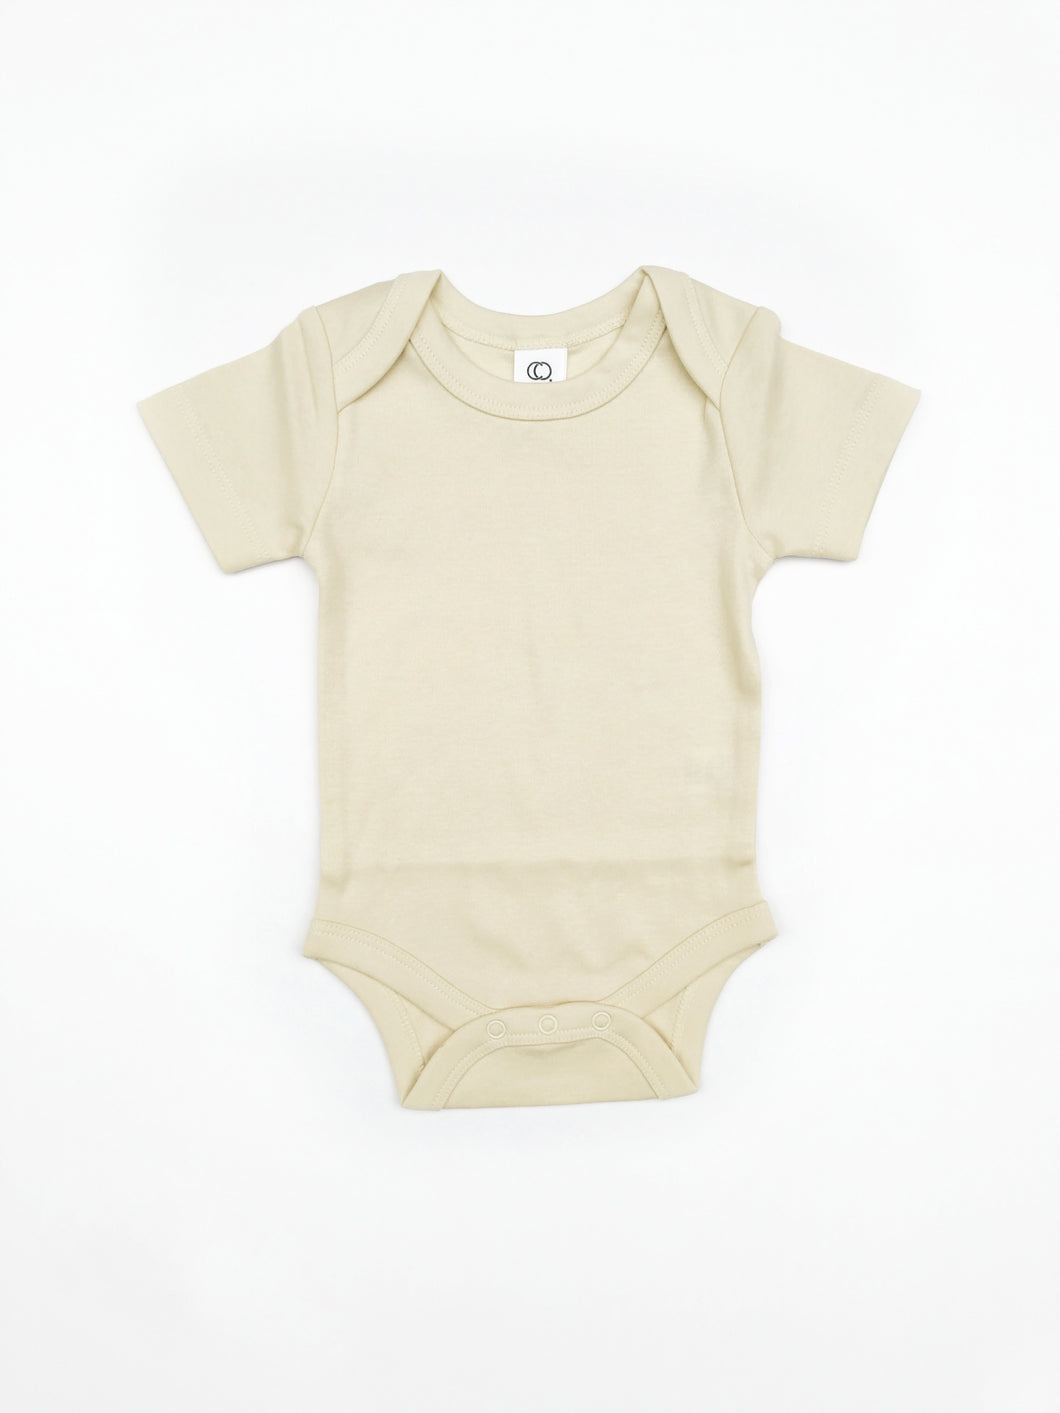 Lil Bug - Basic Bodysuit with Short Sleeves, sizes 0/3 months - 12/18 months